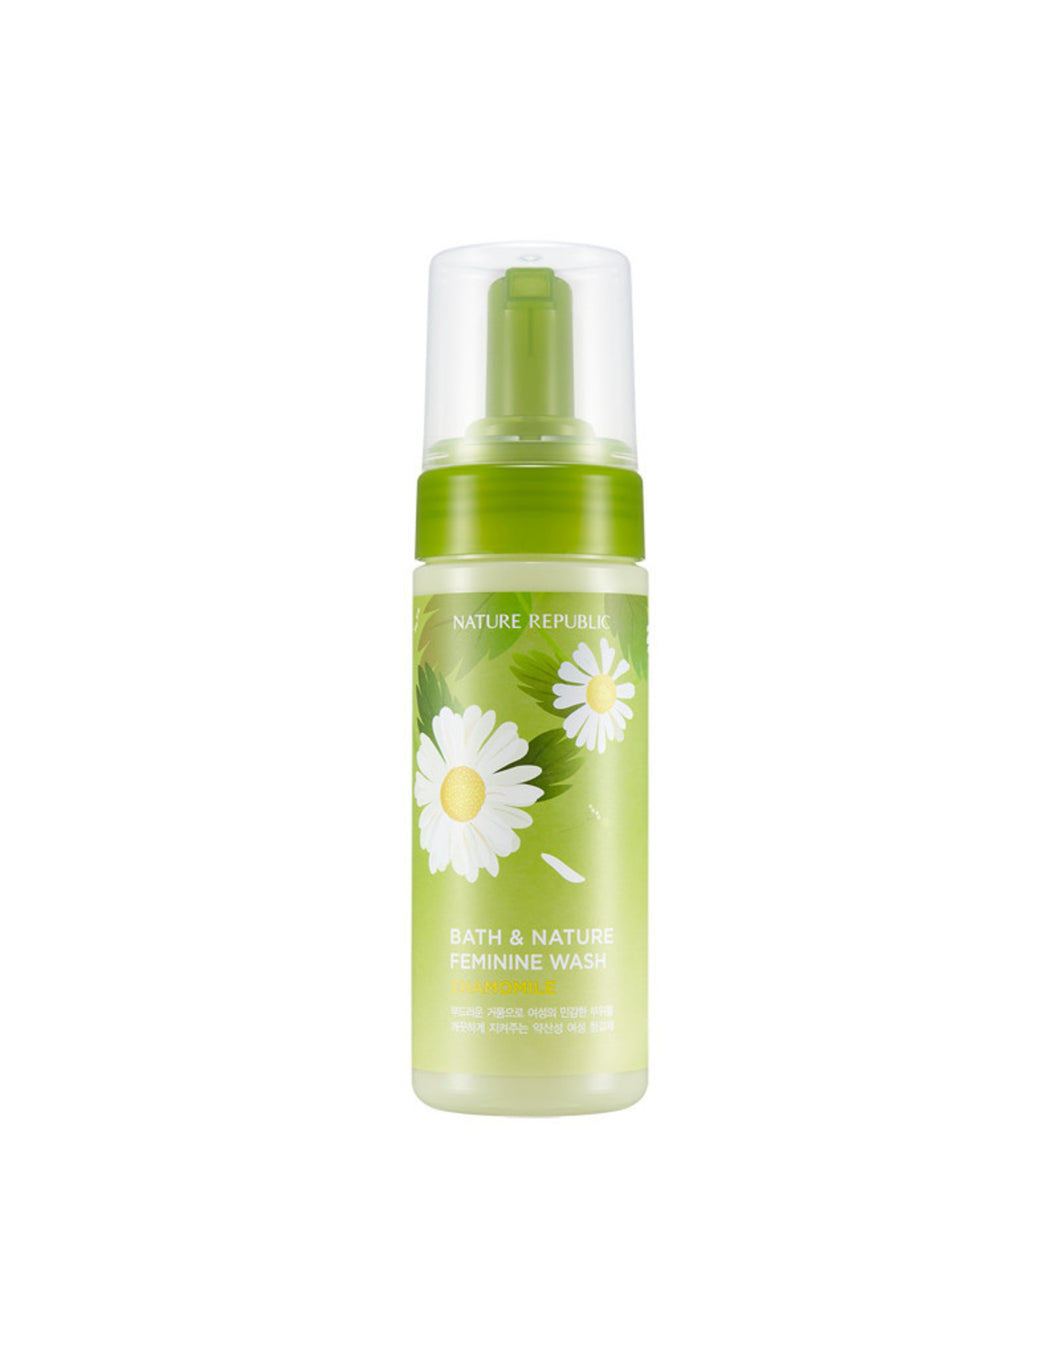 Bath & Nature Chamomile Feminine Wash